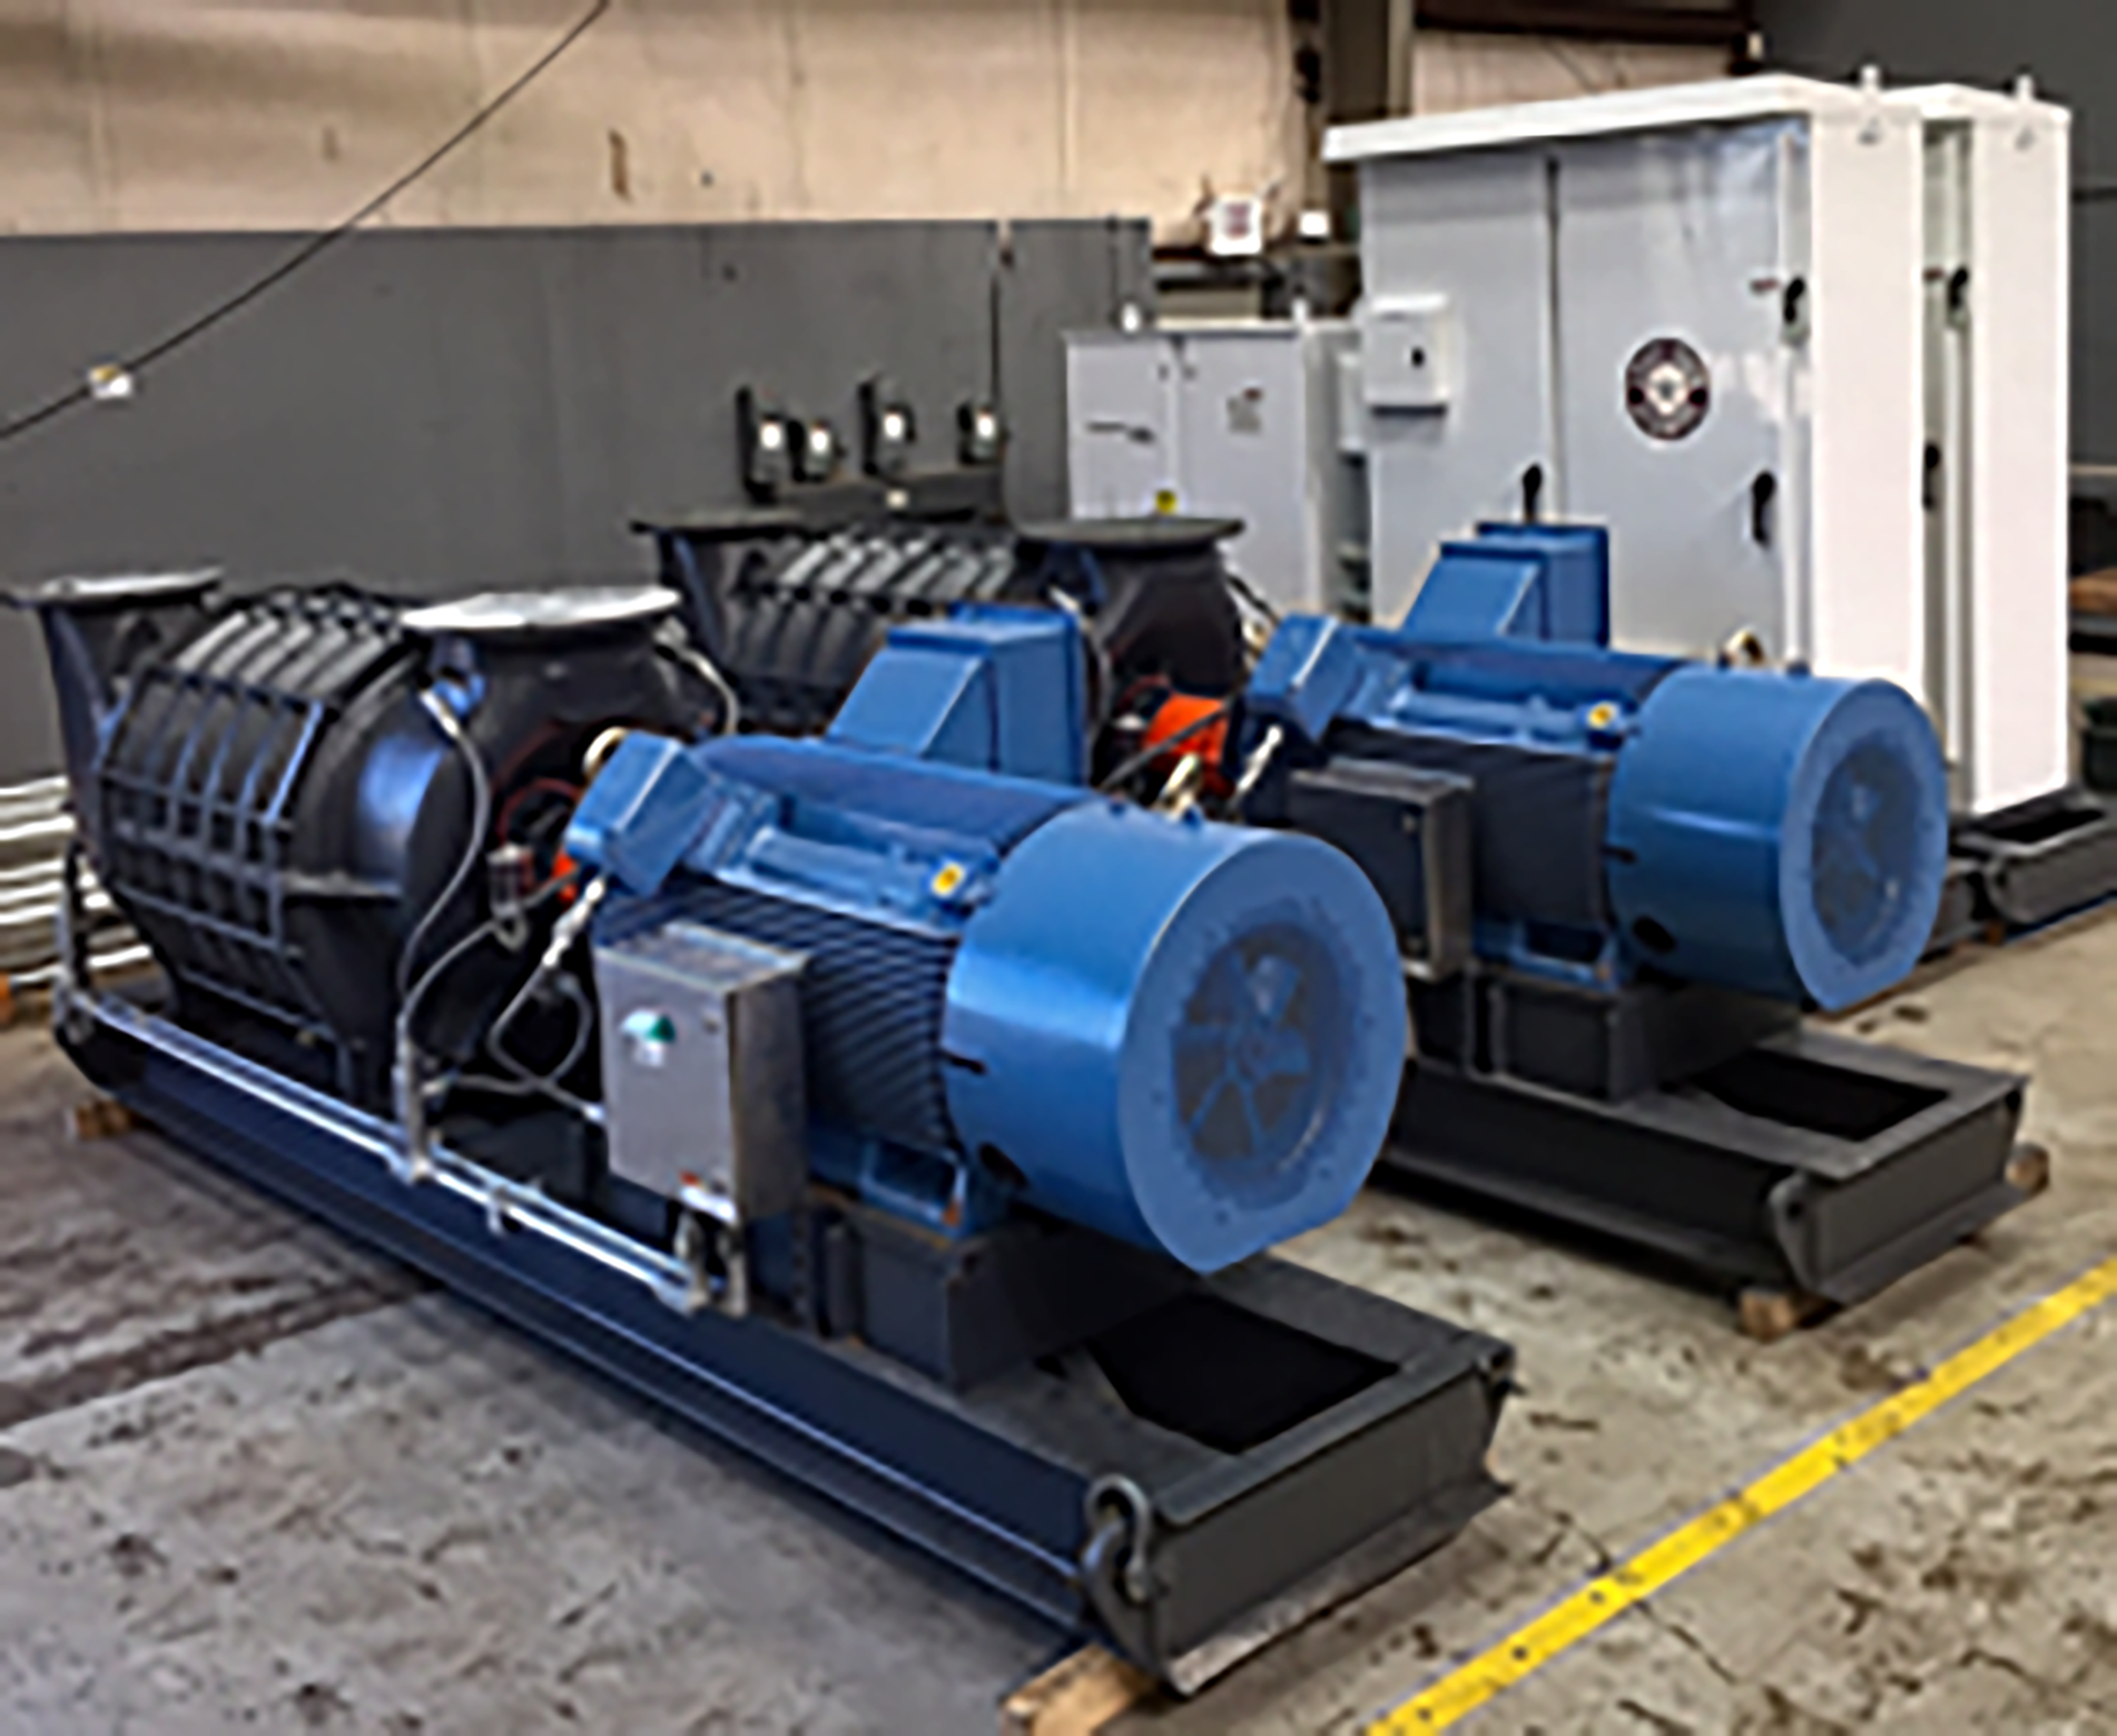 Lone Star can build-to-suit to your specific process performance for a rental blower in a matter of days or ship immediately from our extensive inventory. Process air or gas systems have specific flow and pressure requirements. Our applications engineers will make sure your process performance is met. From 1 to 30 PSI (15inHG Vacuum) delta pressure and 500 to 200,000 cfm air or gas, pressure or vacuum; we have a solution either emergency response or long term temporary applications. Rent-to-Own Options as well as Brand New Replacement Blowers are available. Blower Packages can include a simple bare blower or complete integrated system to include electric motor, motor starter, PLC control with monitoring and network connections, and other accessory items all packaged to simply connect power and connect piping and its fully automated. We can also build a rental to a specific process gas with the correct materials and protection. Area classifications to Class 1, Div 1 or Zone 0 or ATEX are available.